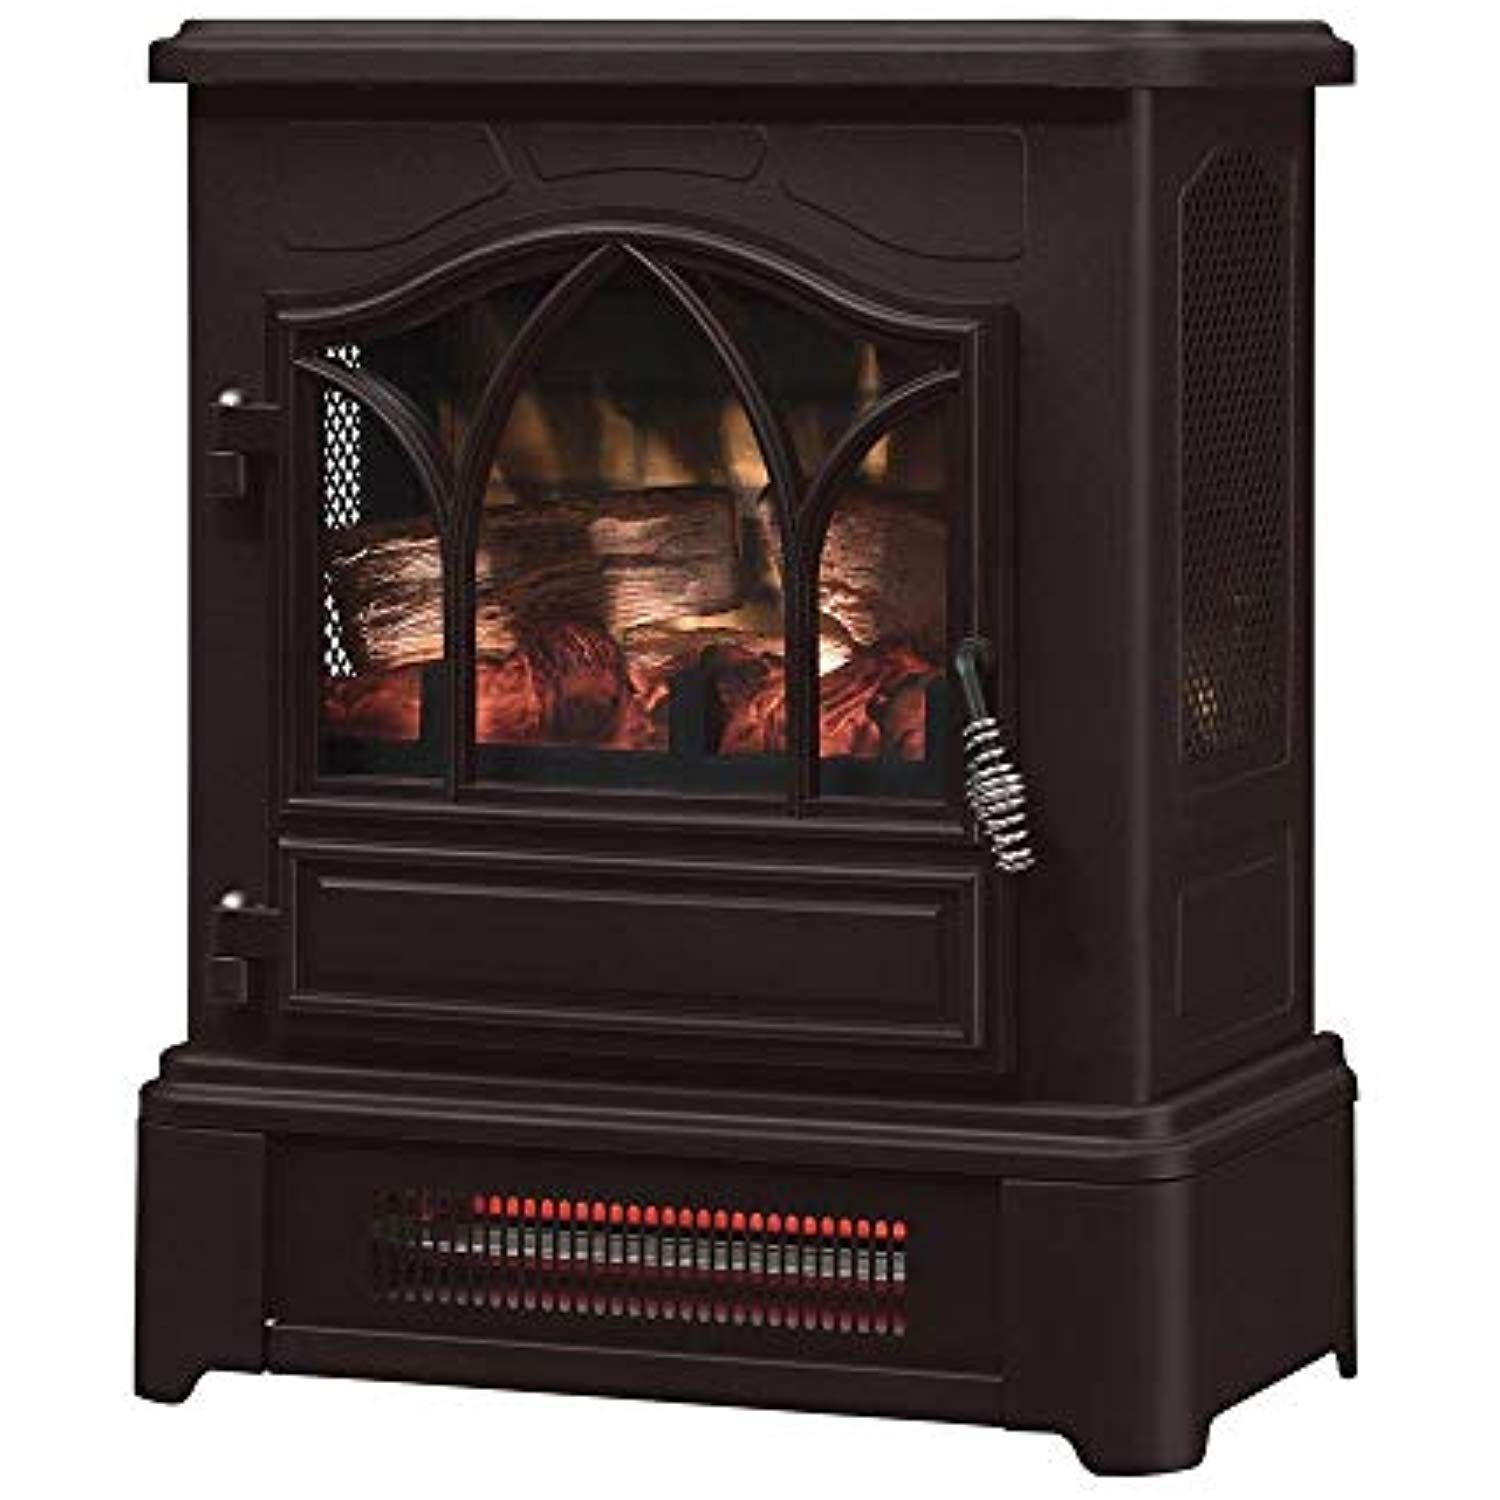 Duraflame Electric Dfi 470 07 Infrared Quartz Fireplace Stove